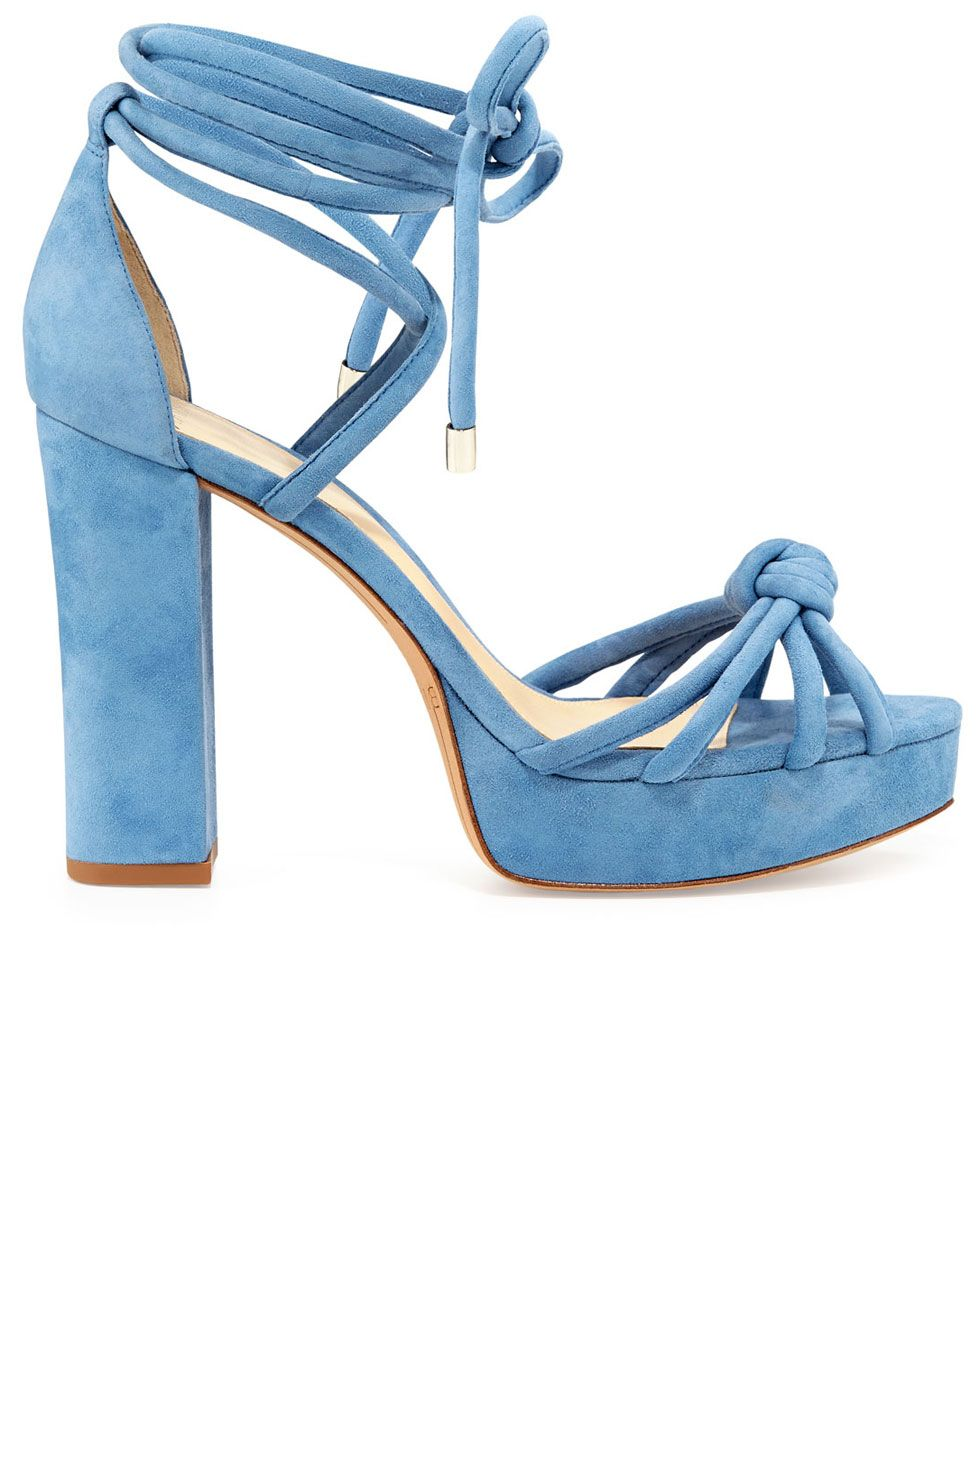 37 Blue Wedding Shoes - The Best Blue Shoes For Your Wedding